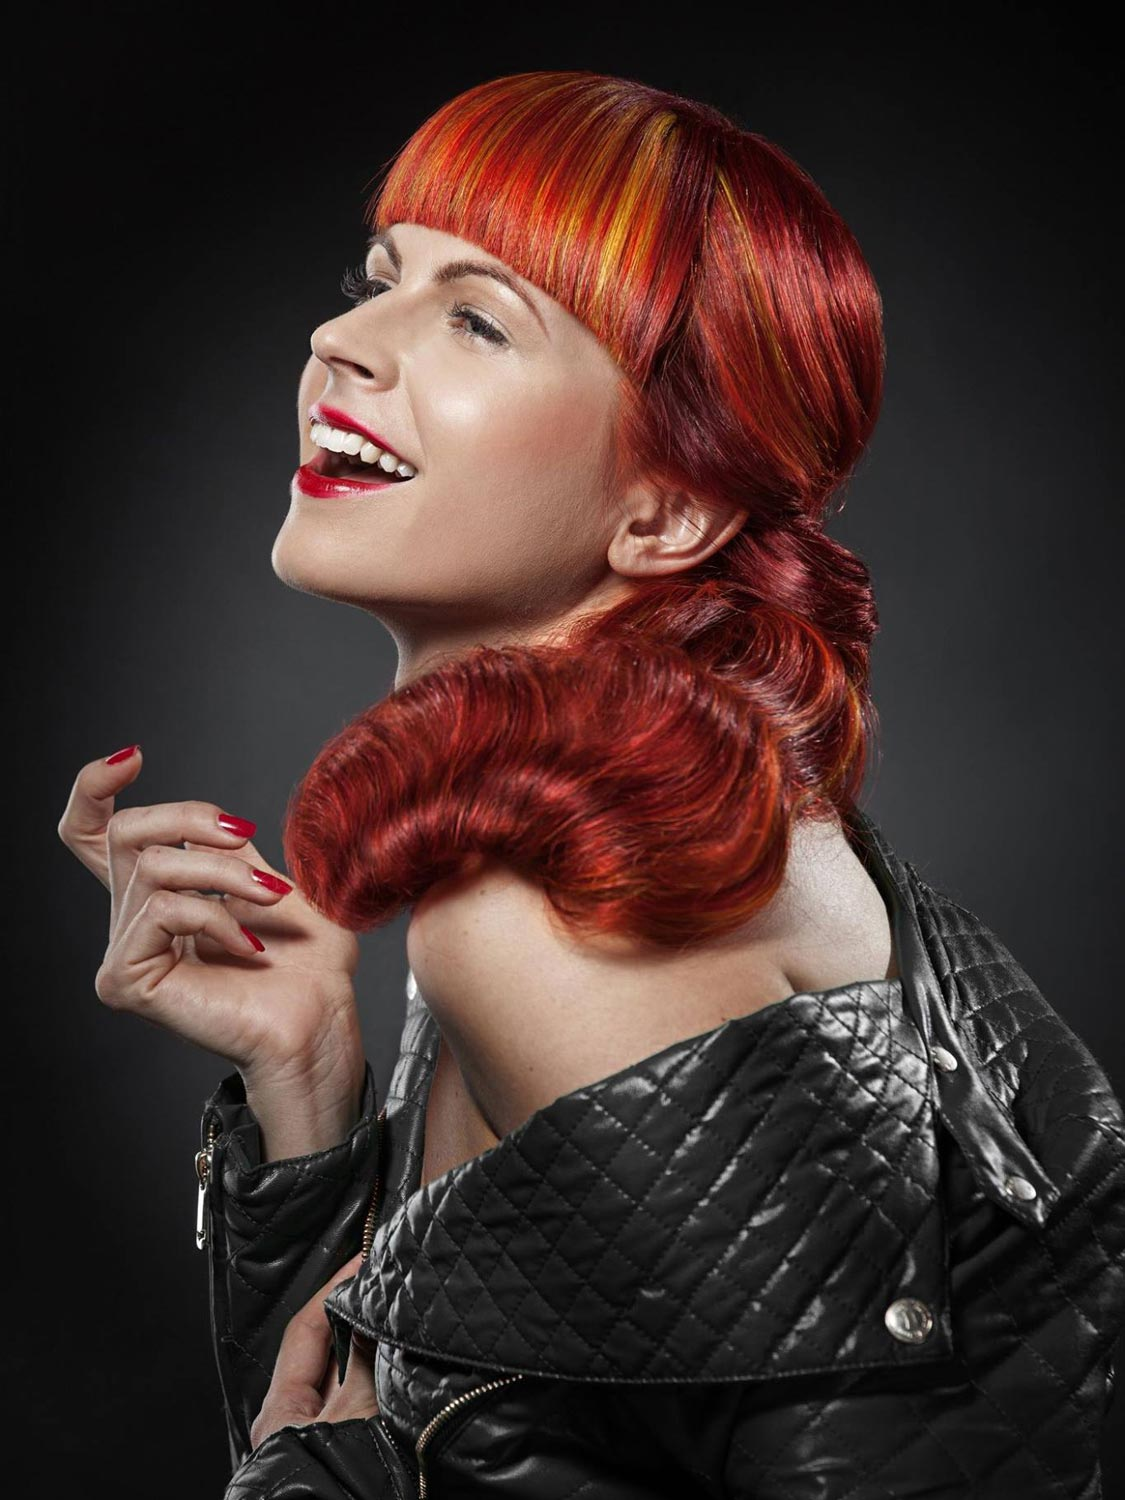 Petra Sedláková, salon La Donna Magica, Brno – nominace v soutěžní kategorii Color Zoom Collection 2015 GLOBAL PARTNER COLORIST.